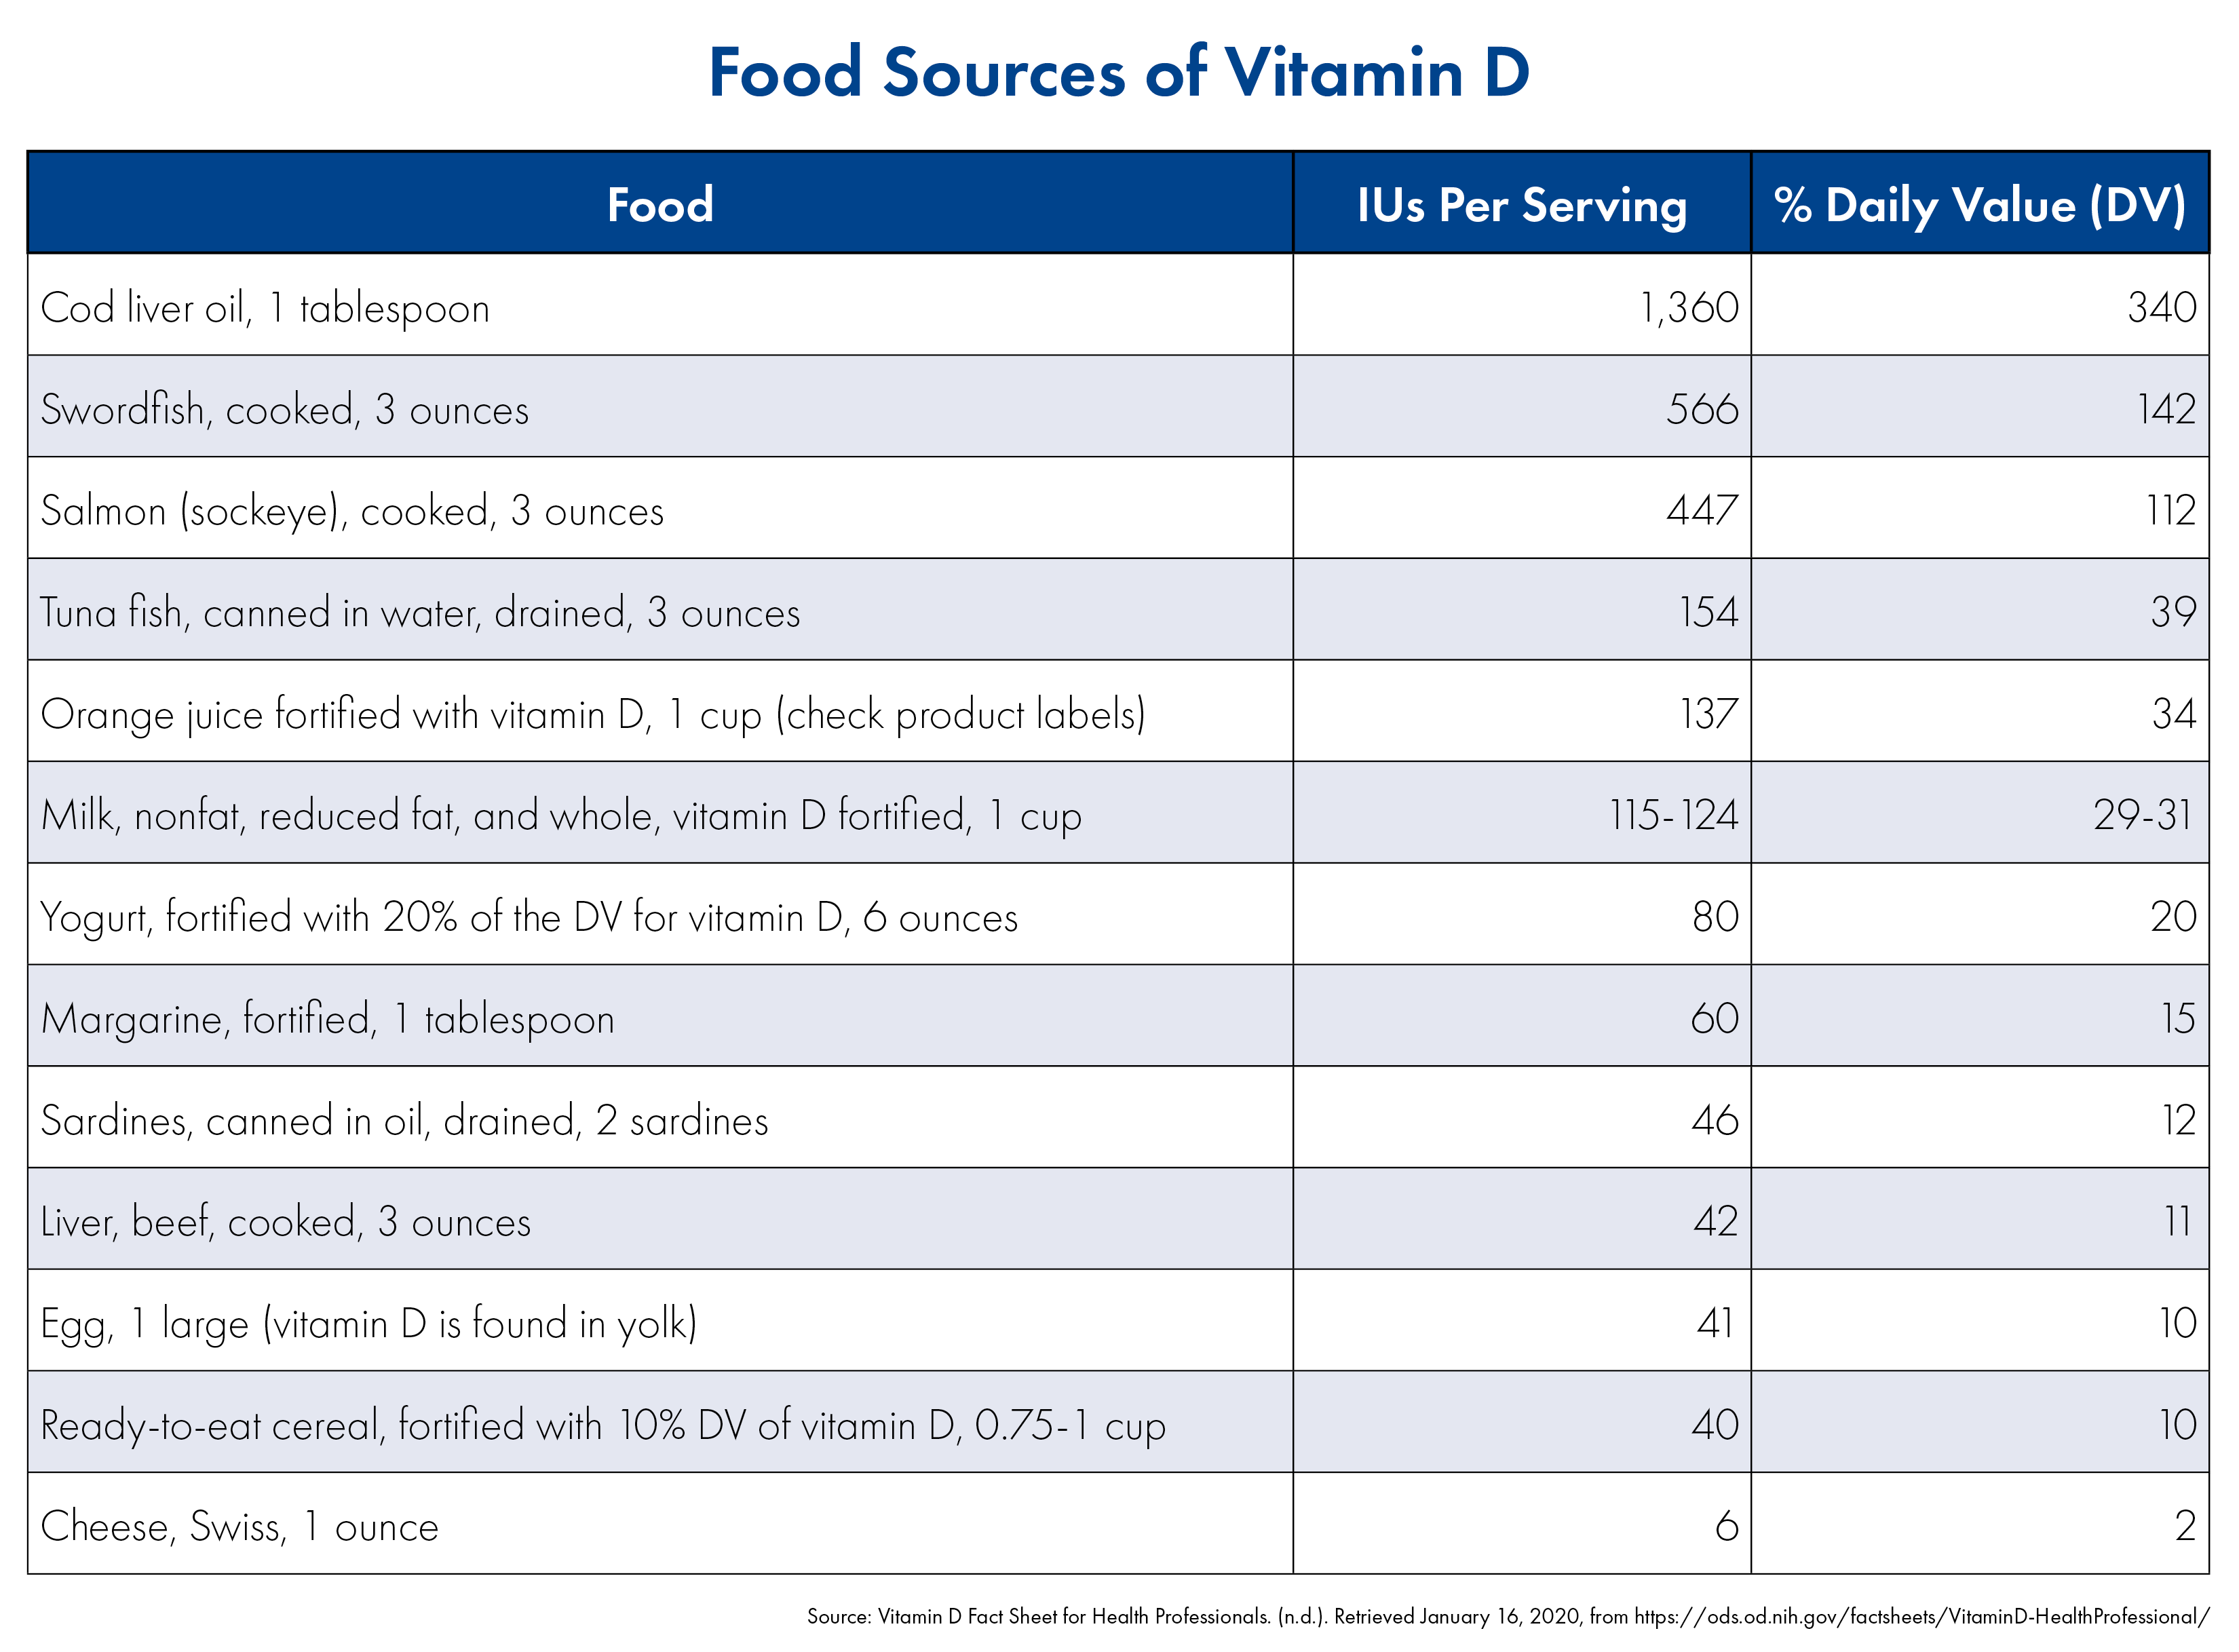 US BioTek Food Sources of Vitamin D Table